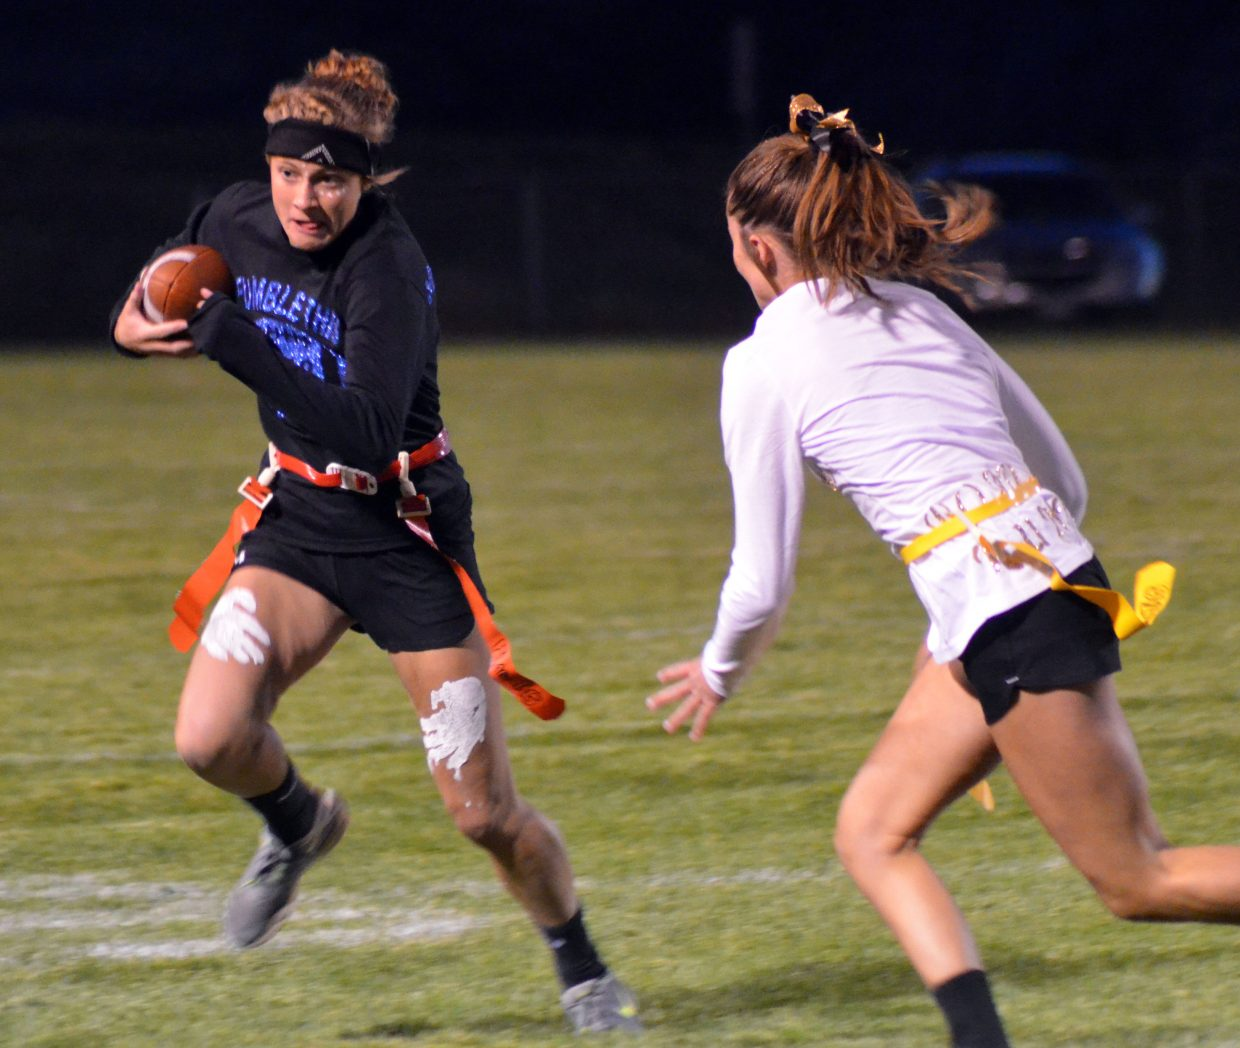 Kelsey McDiffett of Blitz Babes tucks the ball as she sweeps wide during the Powder Puff Football tournament Wednesday night at Moffat County High School.